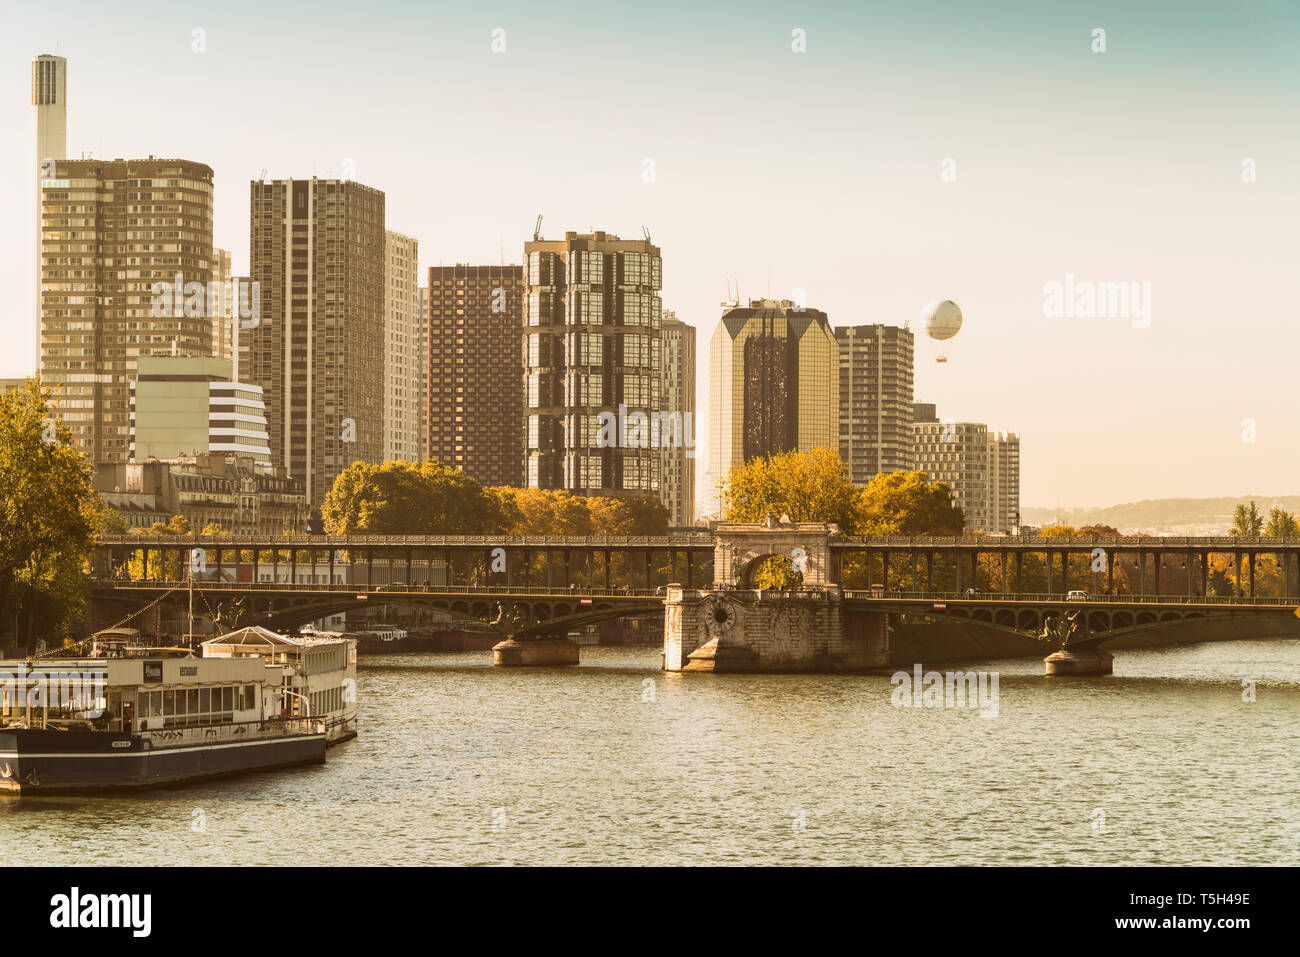 France, Paris, view to quarter Grenelle at Rive Gauche - Stock Image